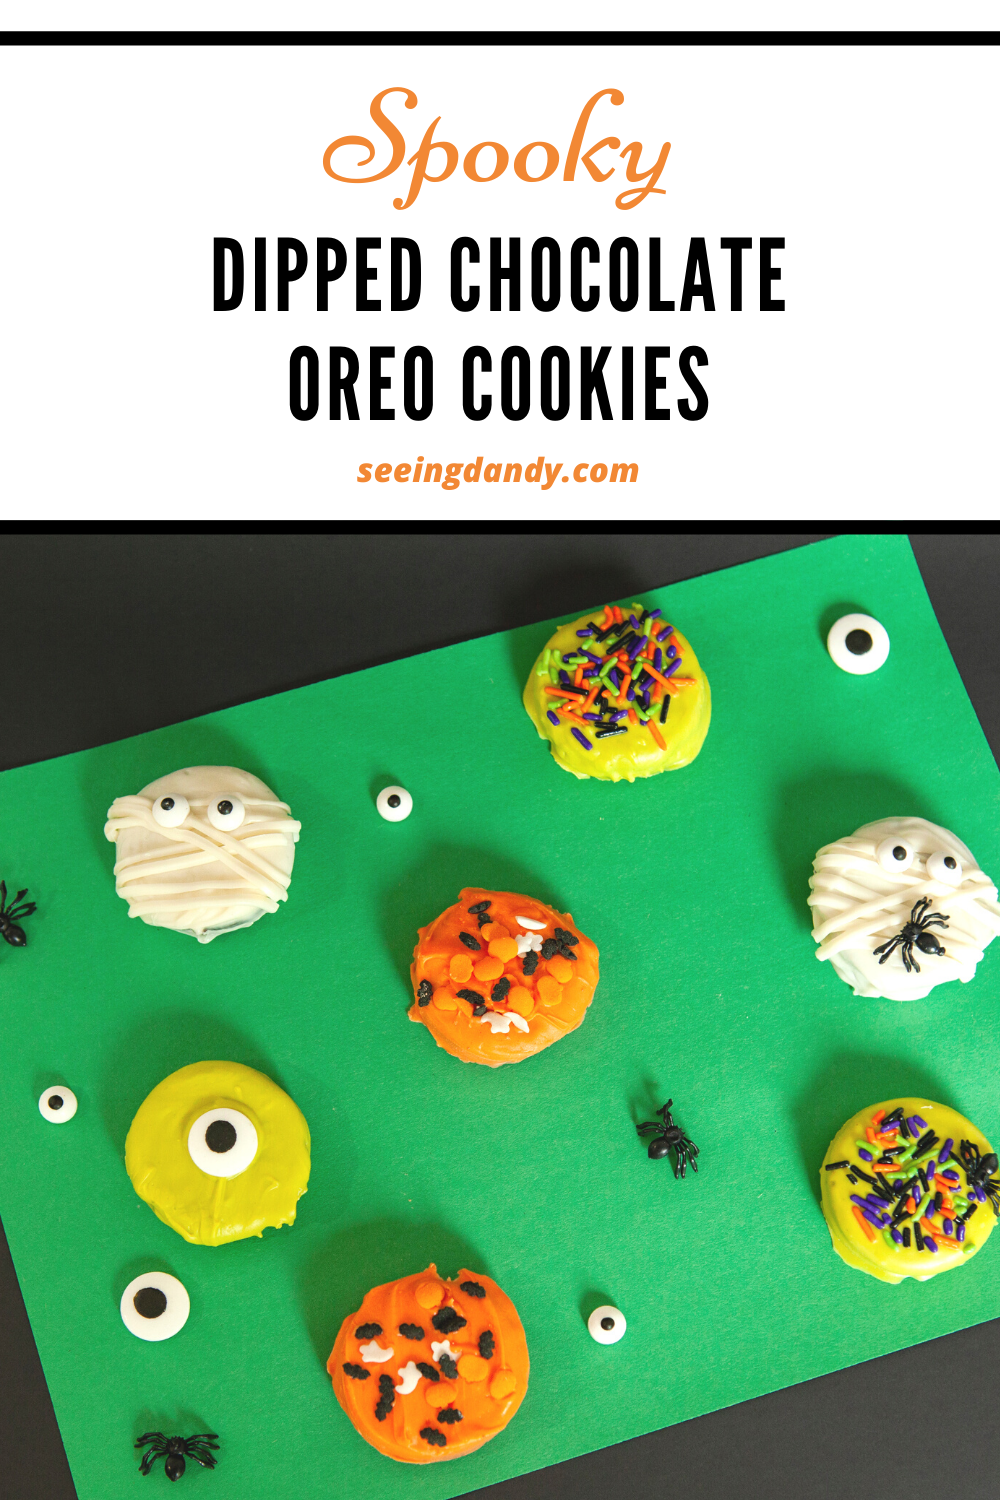 Halloween Dipped Chocolate Oreo, cookie recipes, spooky cookies, spooky recipes, delicious recipes, delicious cookies, holiday recipes, halloween recipe